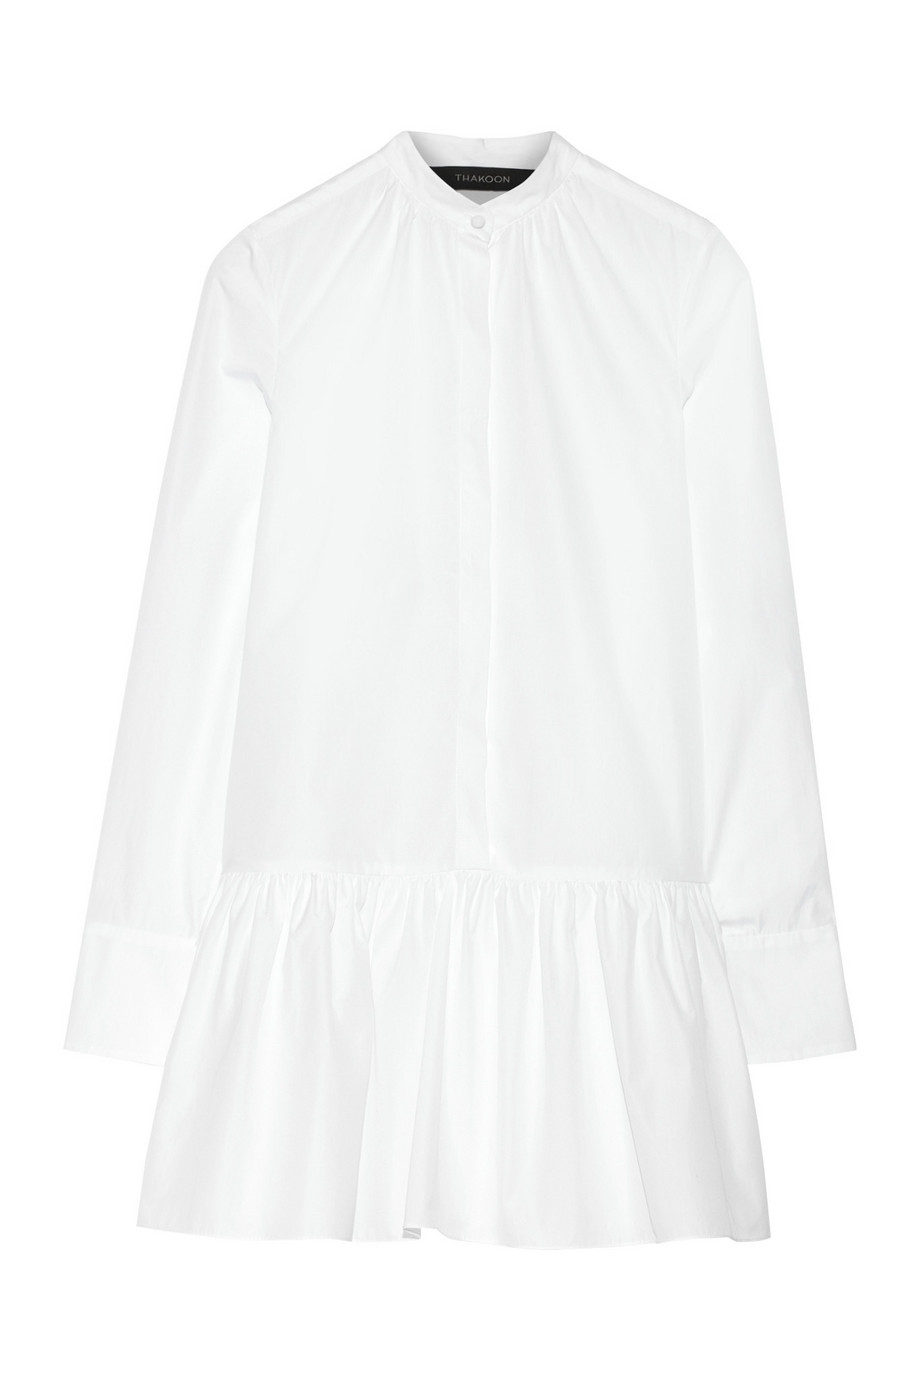 Thakoon Cotton-Poplin Mini Shirt Dress, White, Women's, Size: 6